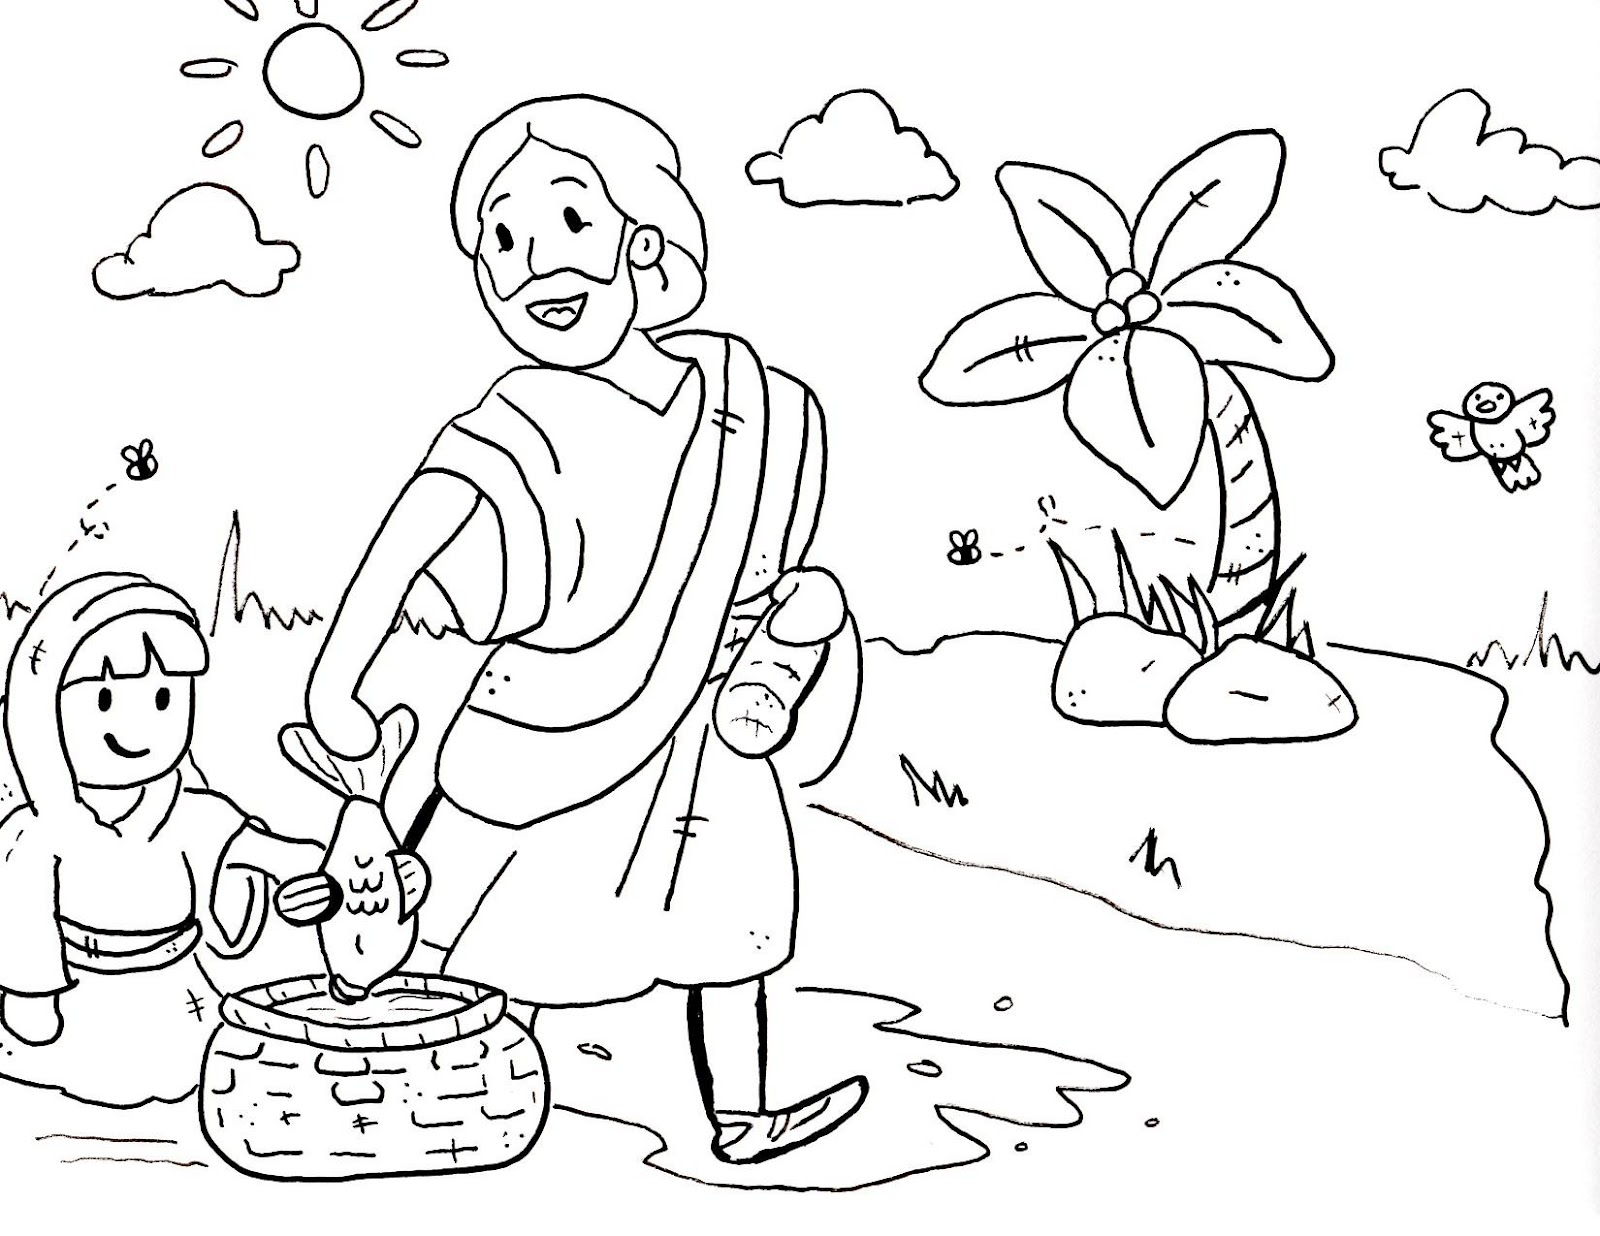 Bible Coloring Pages - Kidsuki